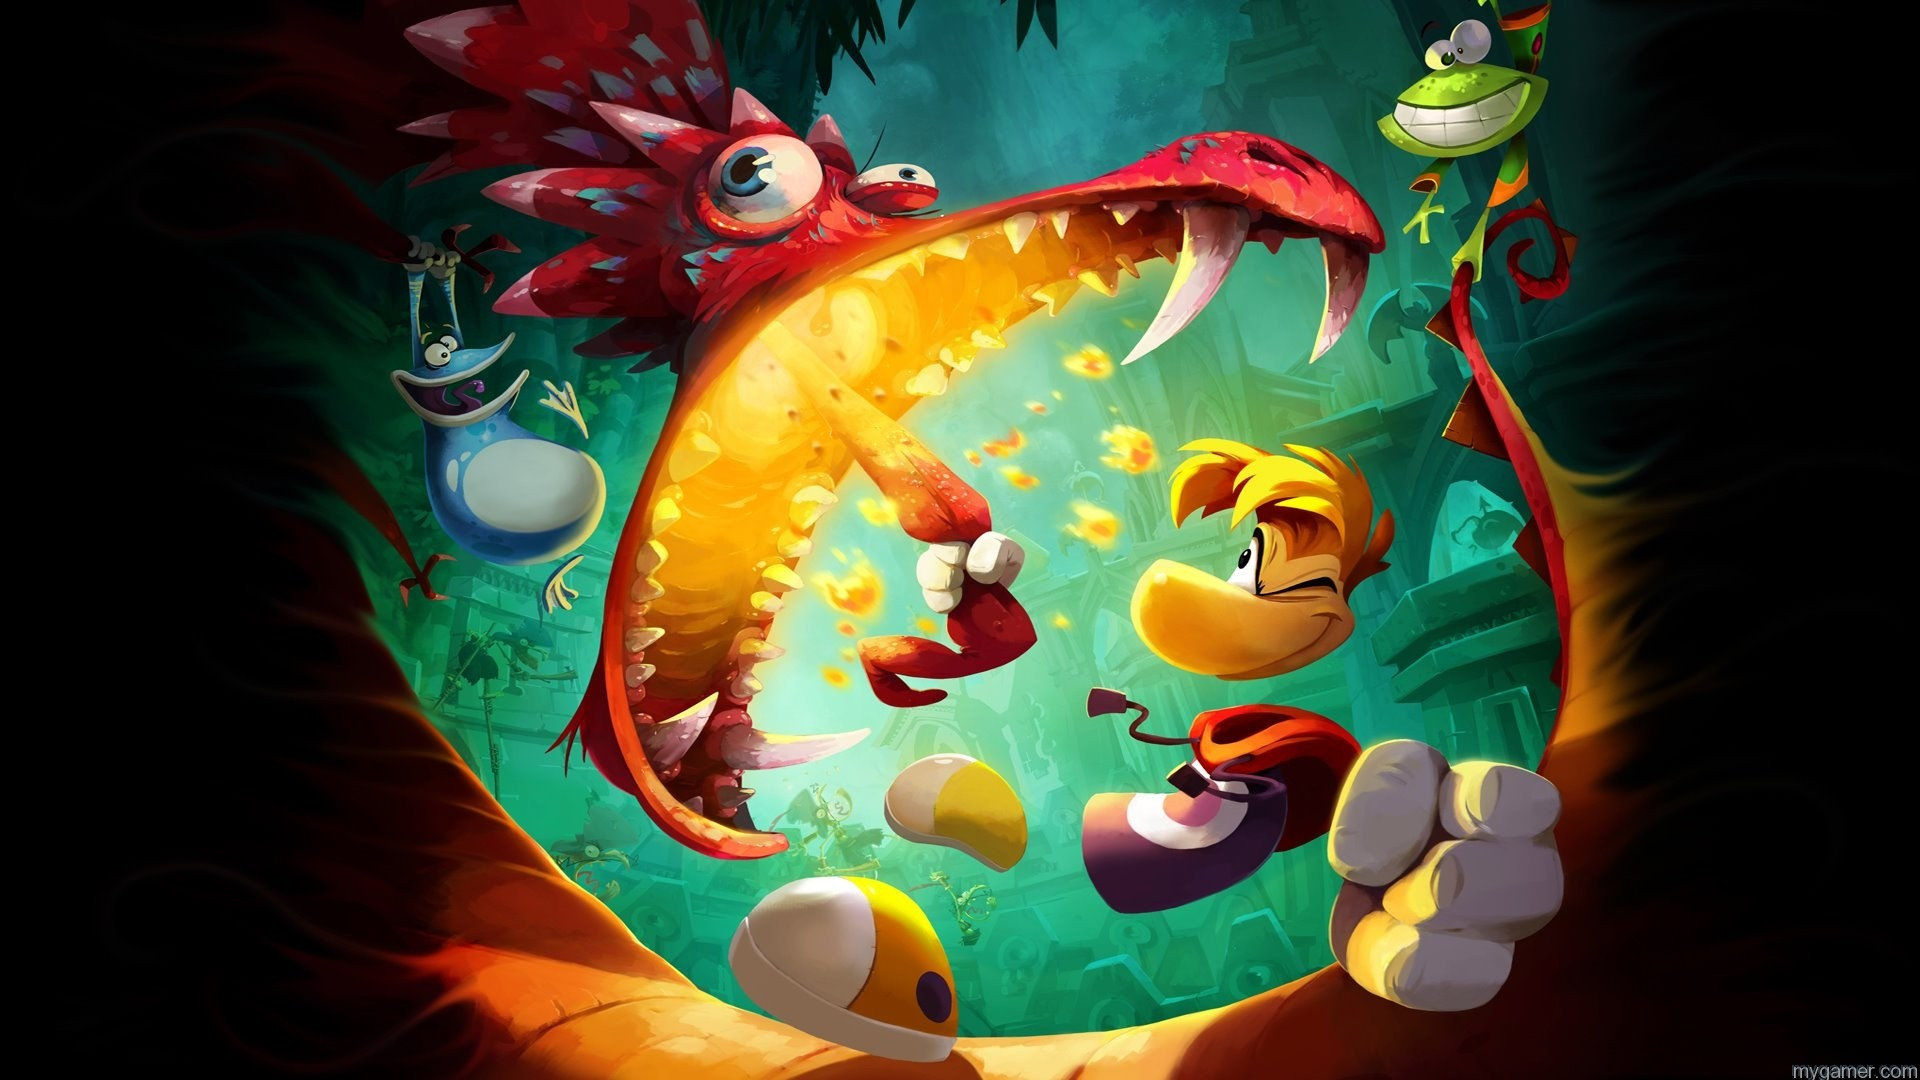 Xbox Live Games with Gold for March 2015 Announced Xbox Live Games with Gold for March 2015 Announced Rayman Legends banner